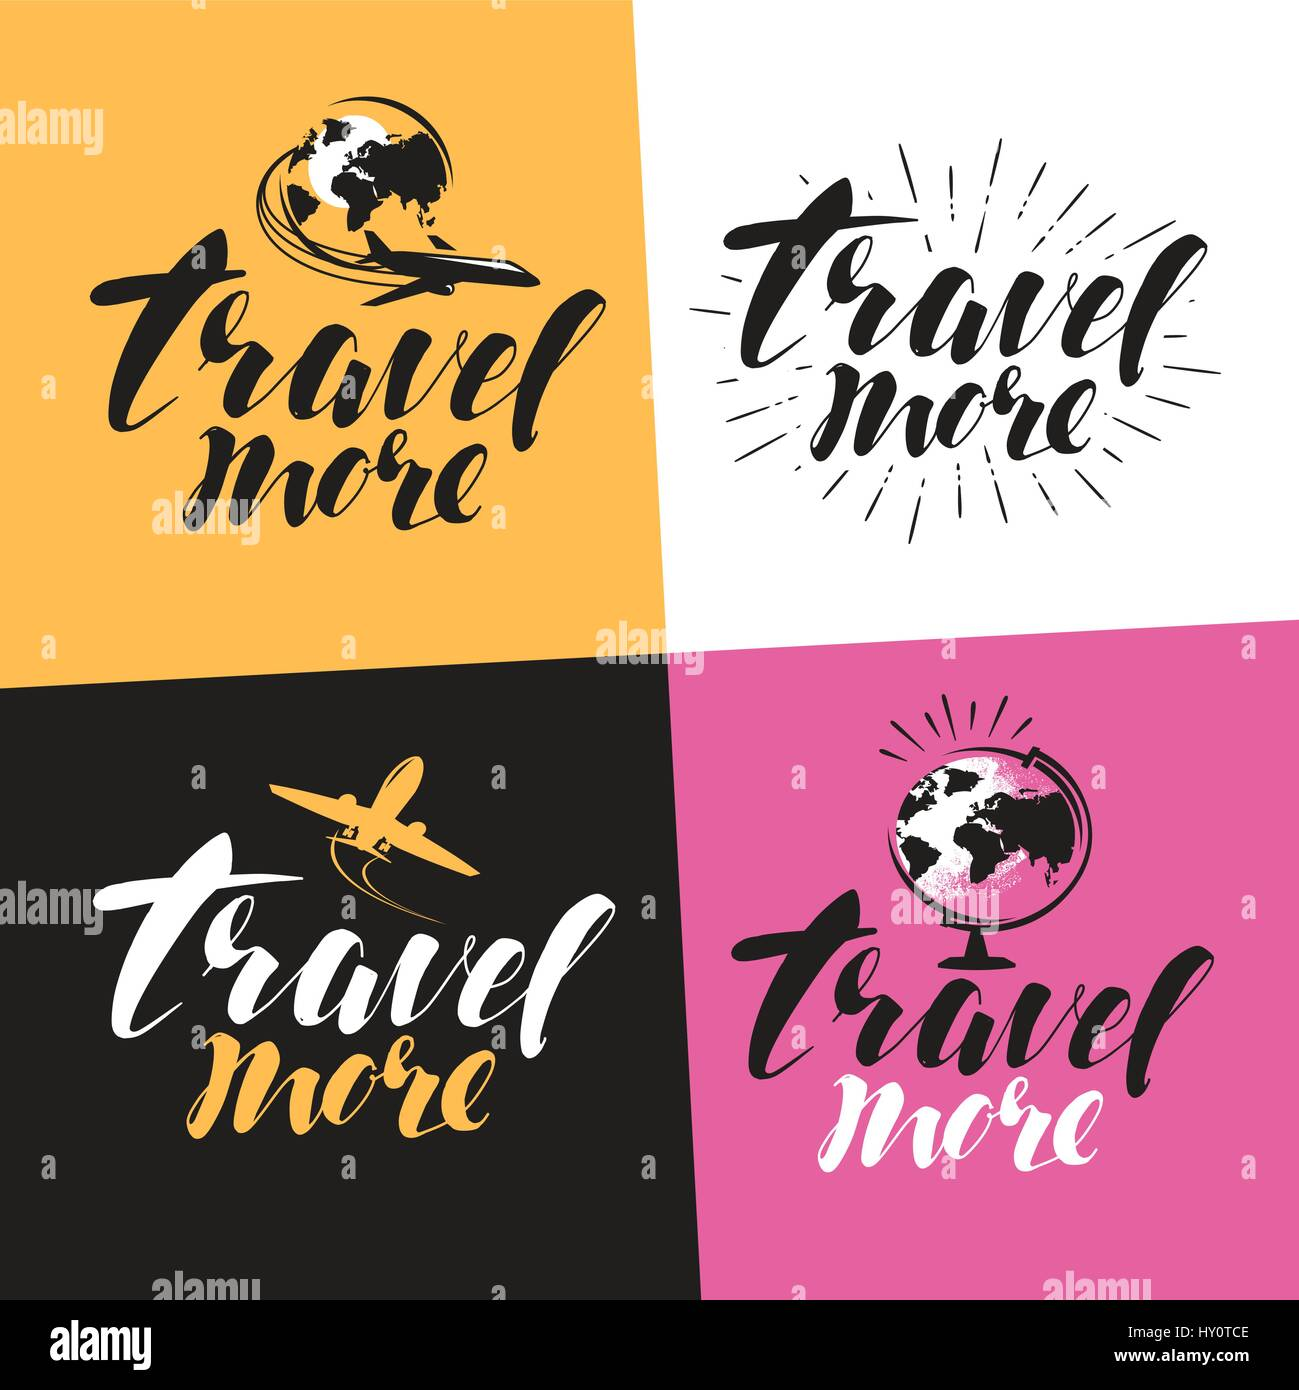 Travel more, label. Handwritten lettering, calligraphy vector illustration - Stock Image